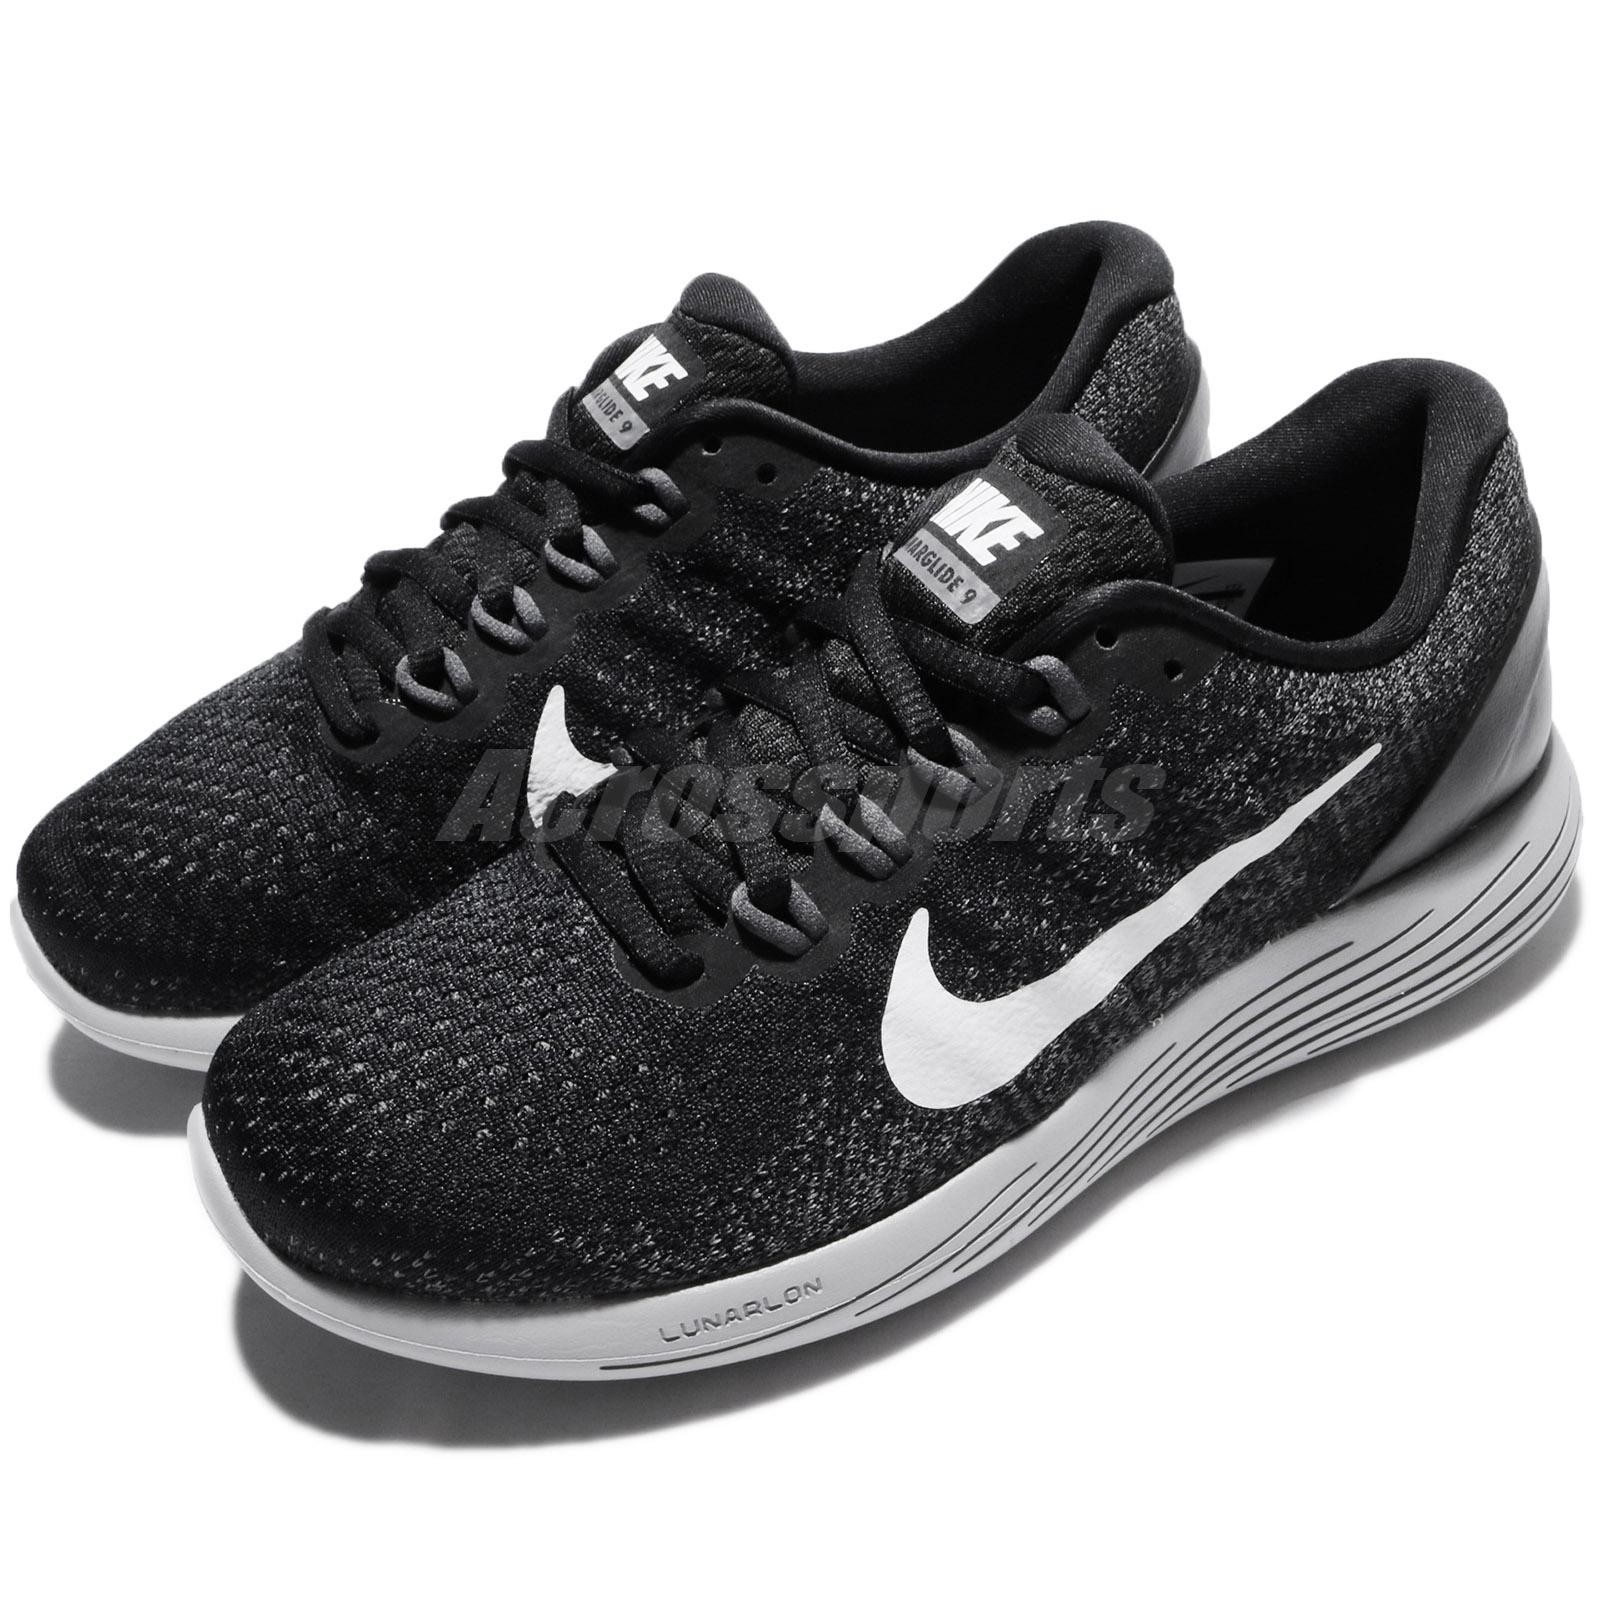 77647ddb5e6 Details about Wmns Nike Lunarglide 9 IX Black Dark Grey Women Running Shoes  Trainer 904716-001